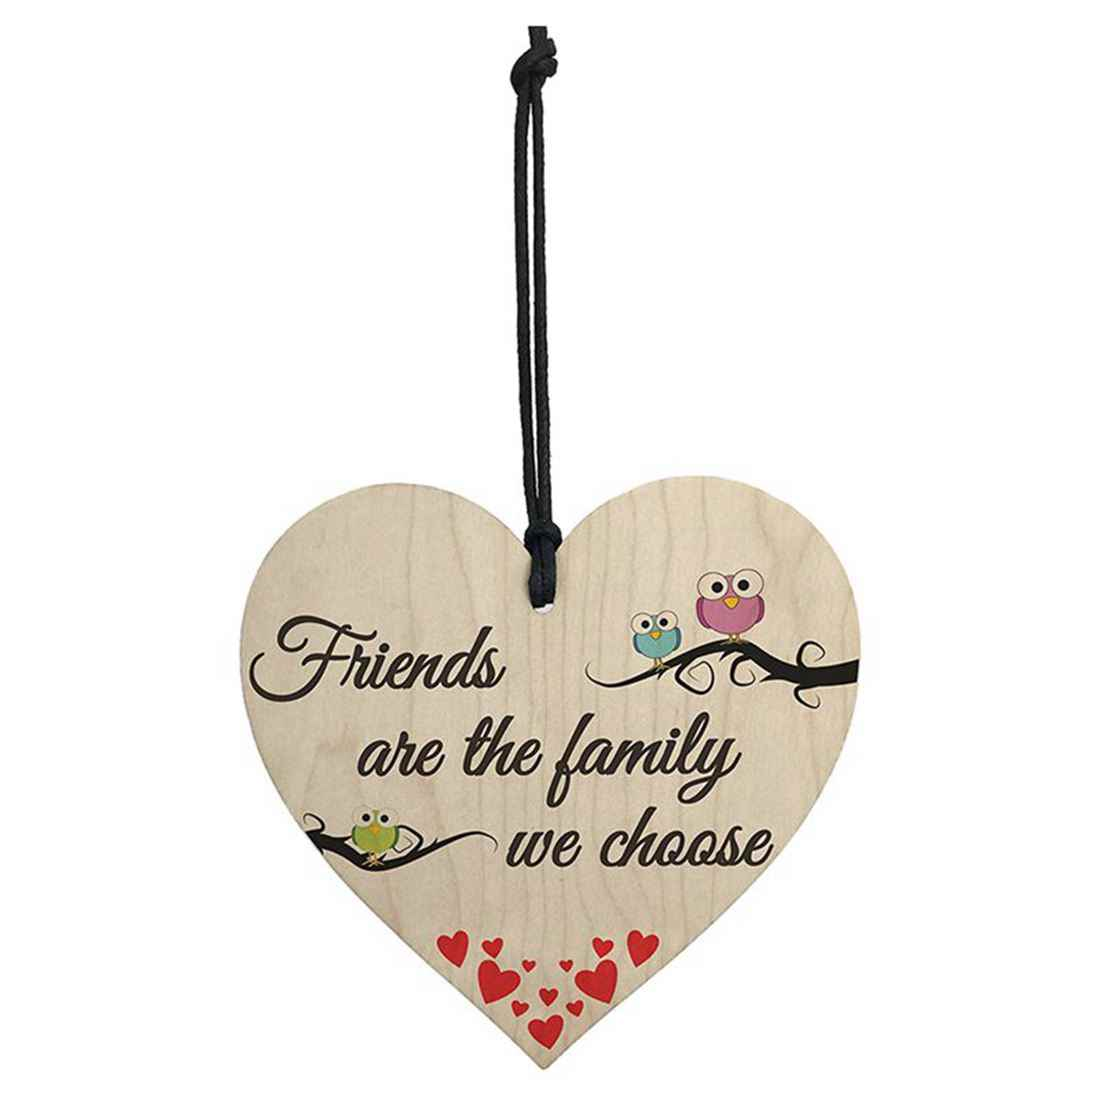 HOT SALE Friends Are The Family We Choose Wooden Hanging Heart Friendship Plaque Gift